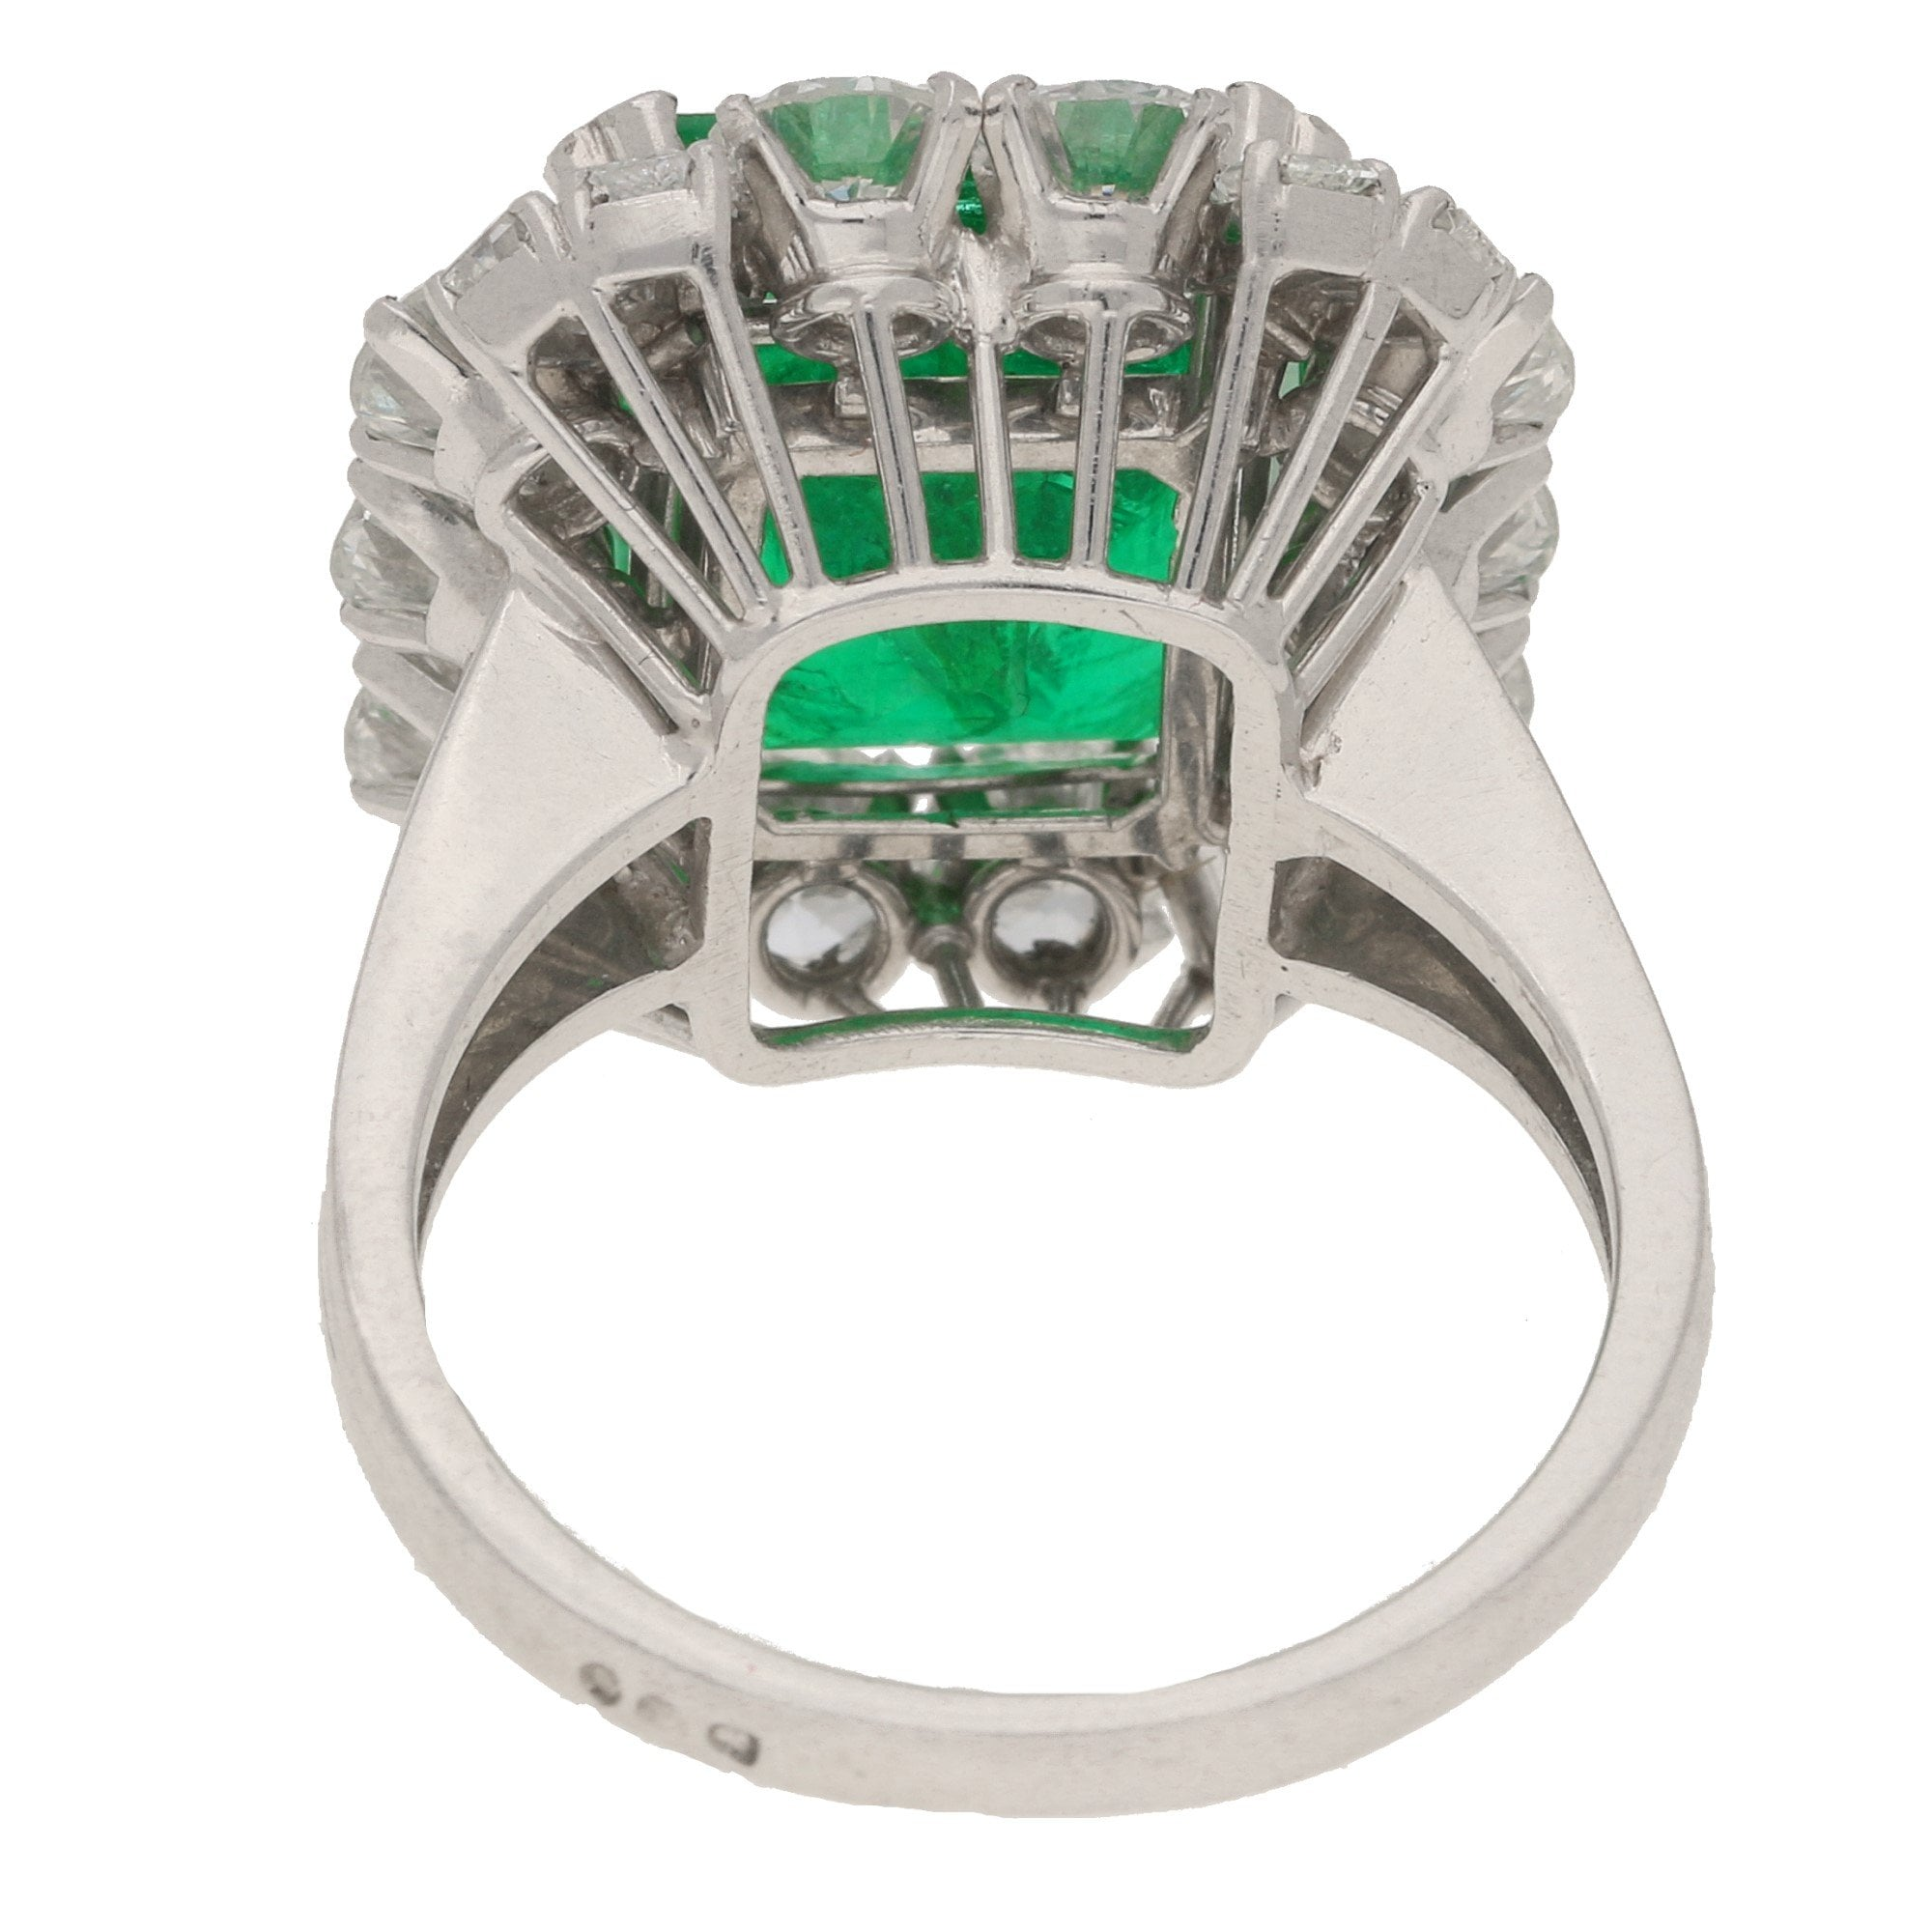 7 70ct Zambian Emerald And Diamond Cluster Cocktail Ring